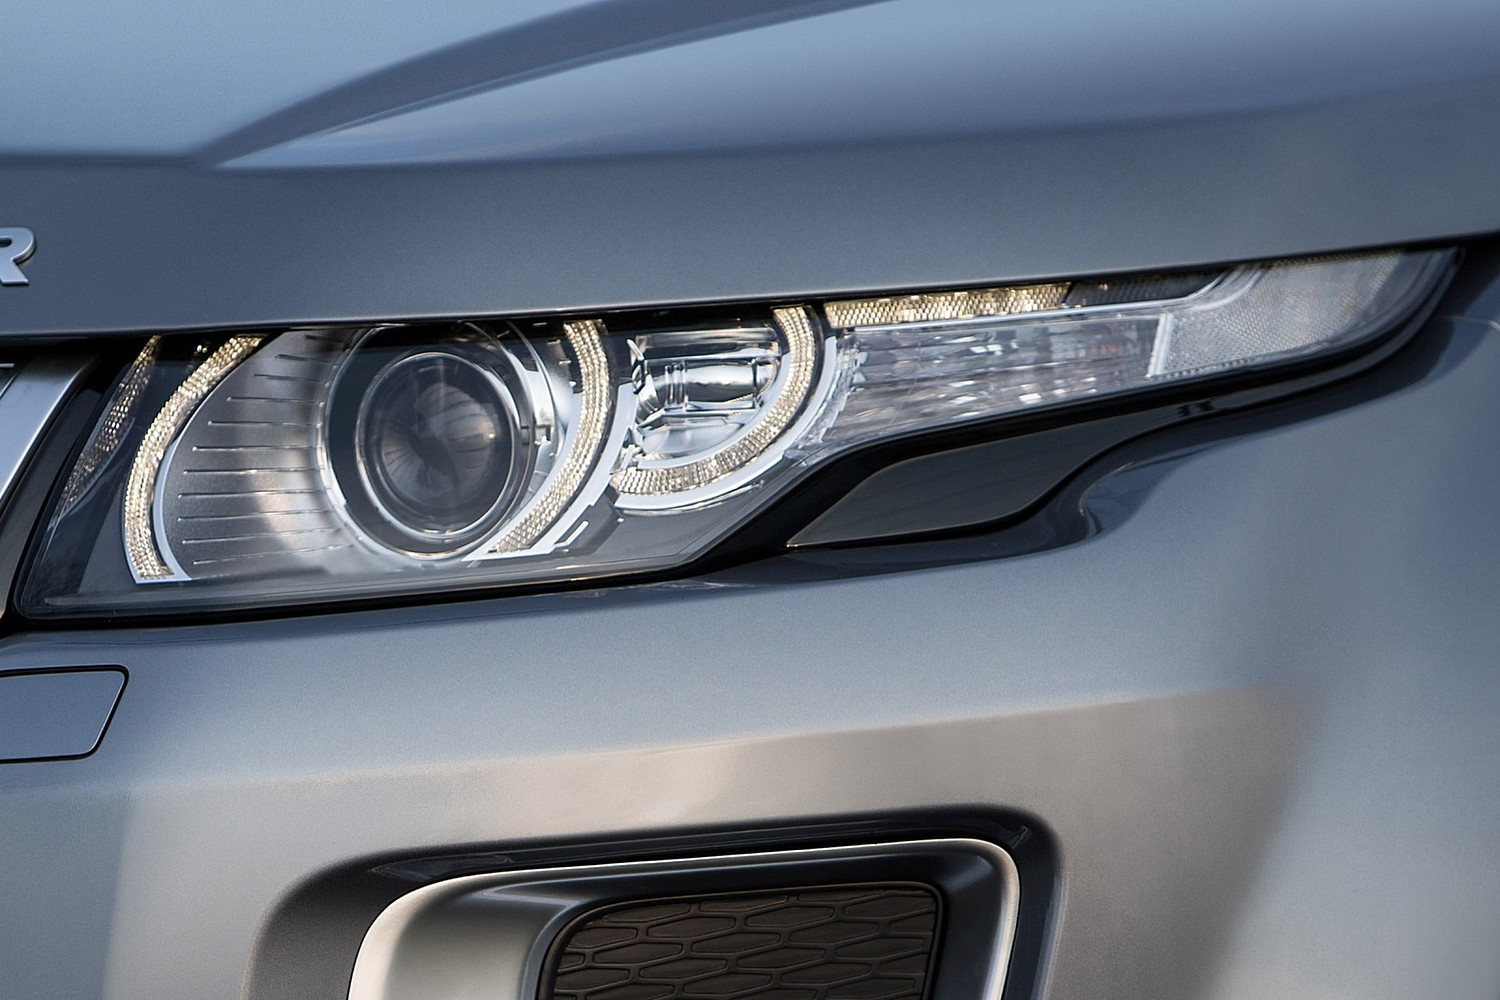 2015 Land Rover Range Rover Evoque Autobiography 4dr SUV Headlamp Detail